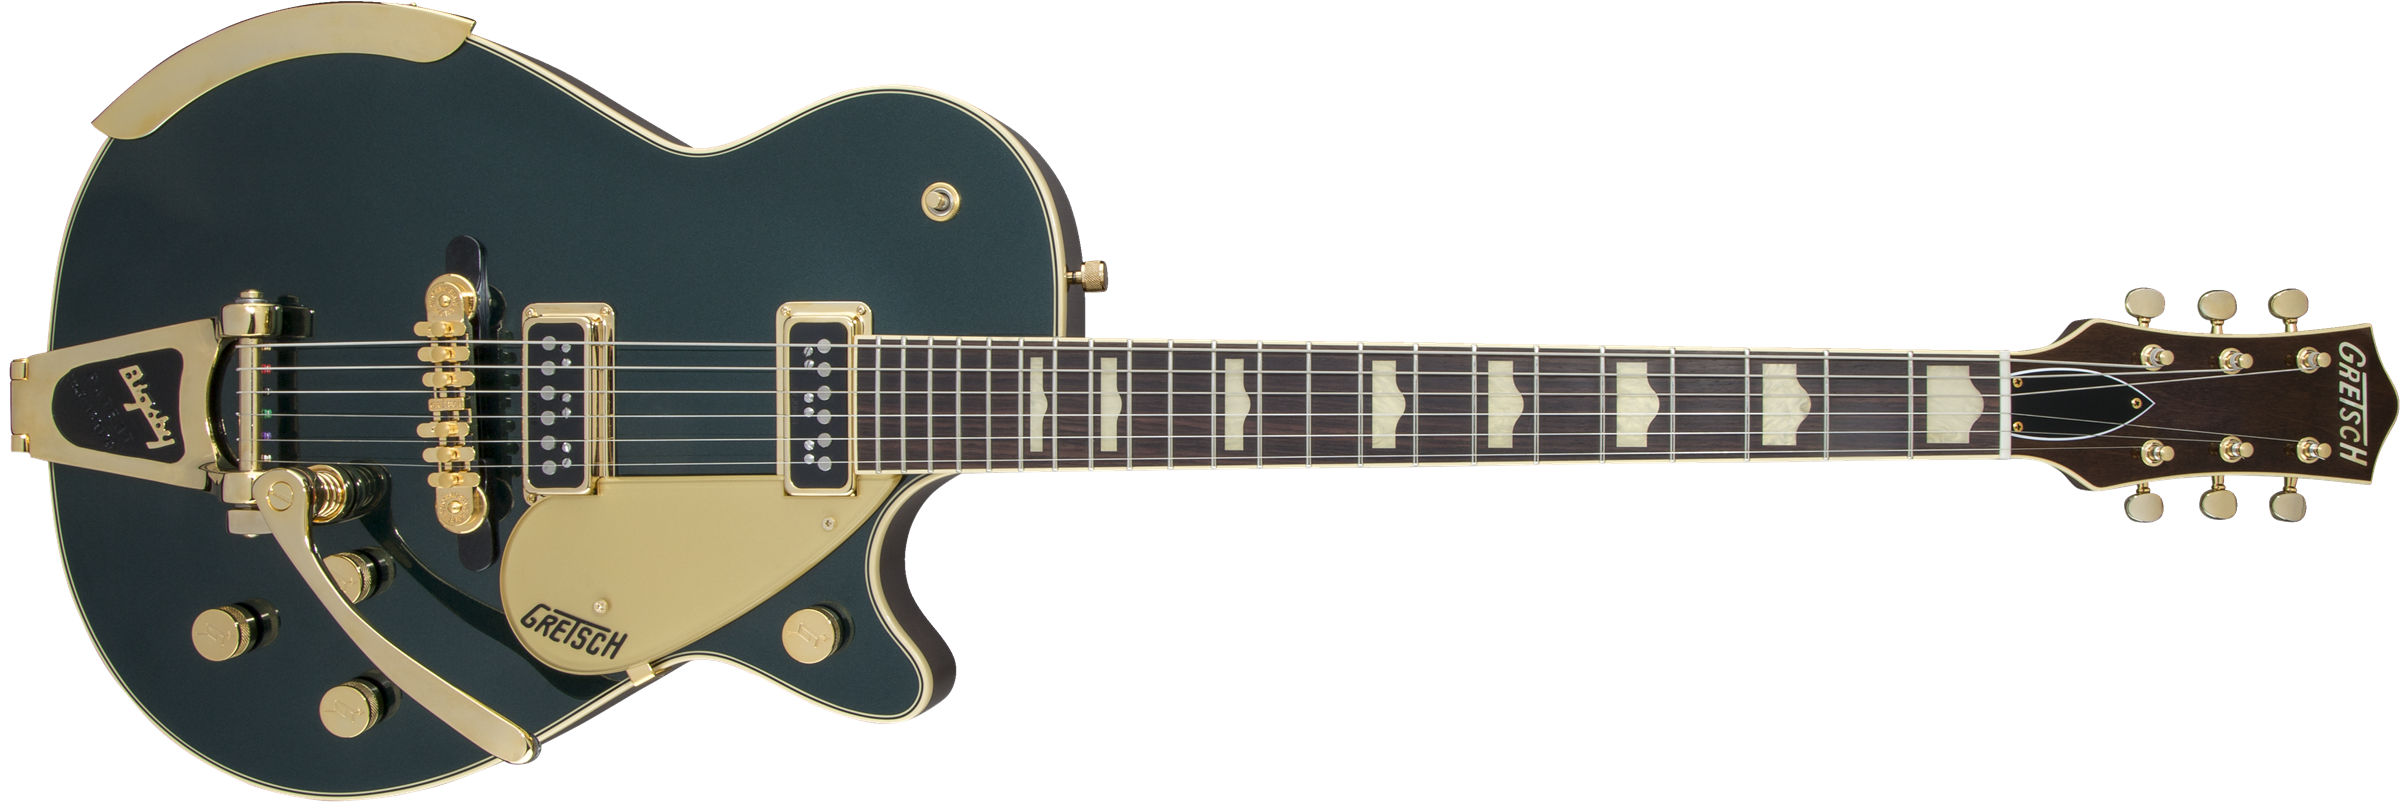 GRETSCH-G6128T-57-Vintage-Select-57-Duo-Jet-with-Bigsby-TV-Jones-Cadillac-Green-sku-571001246